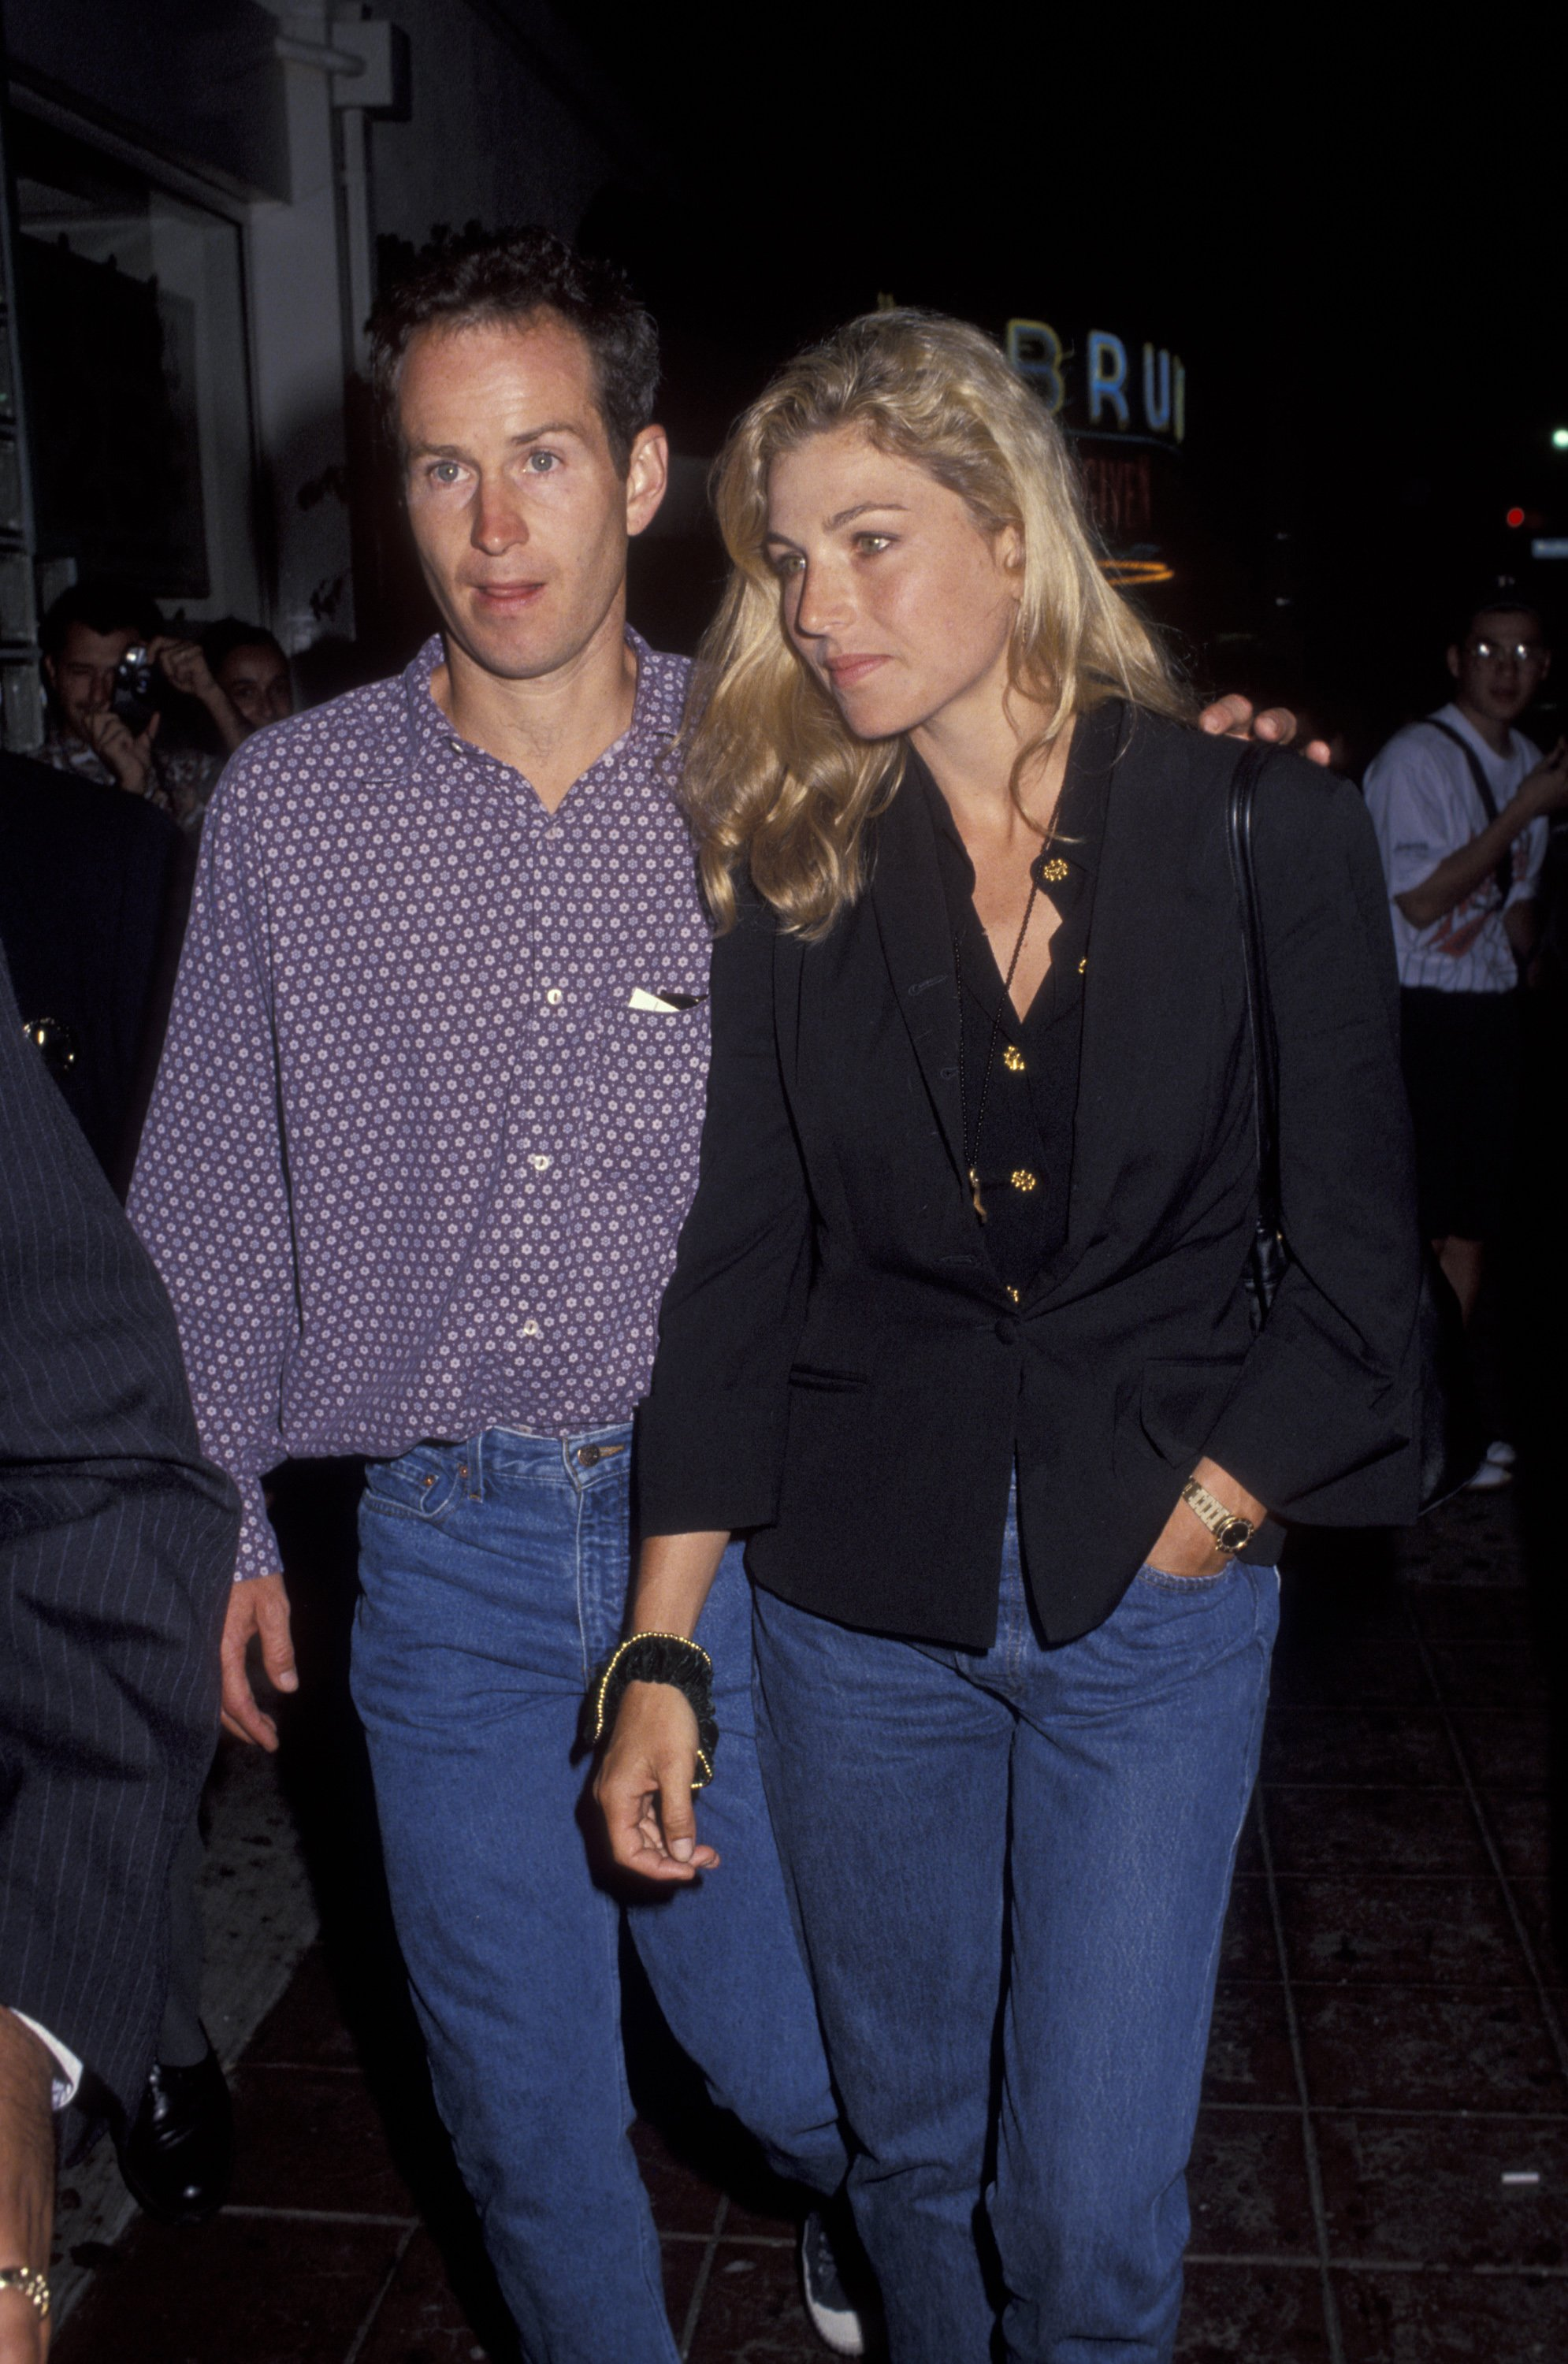 John McEnroe and Tatum O'Neal | Photo by Ron Galella, Ltd./Ron Galella Collection via Getty Images